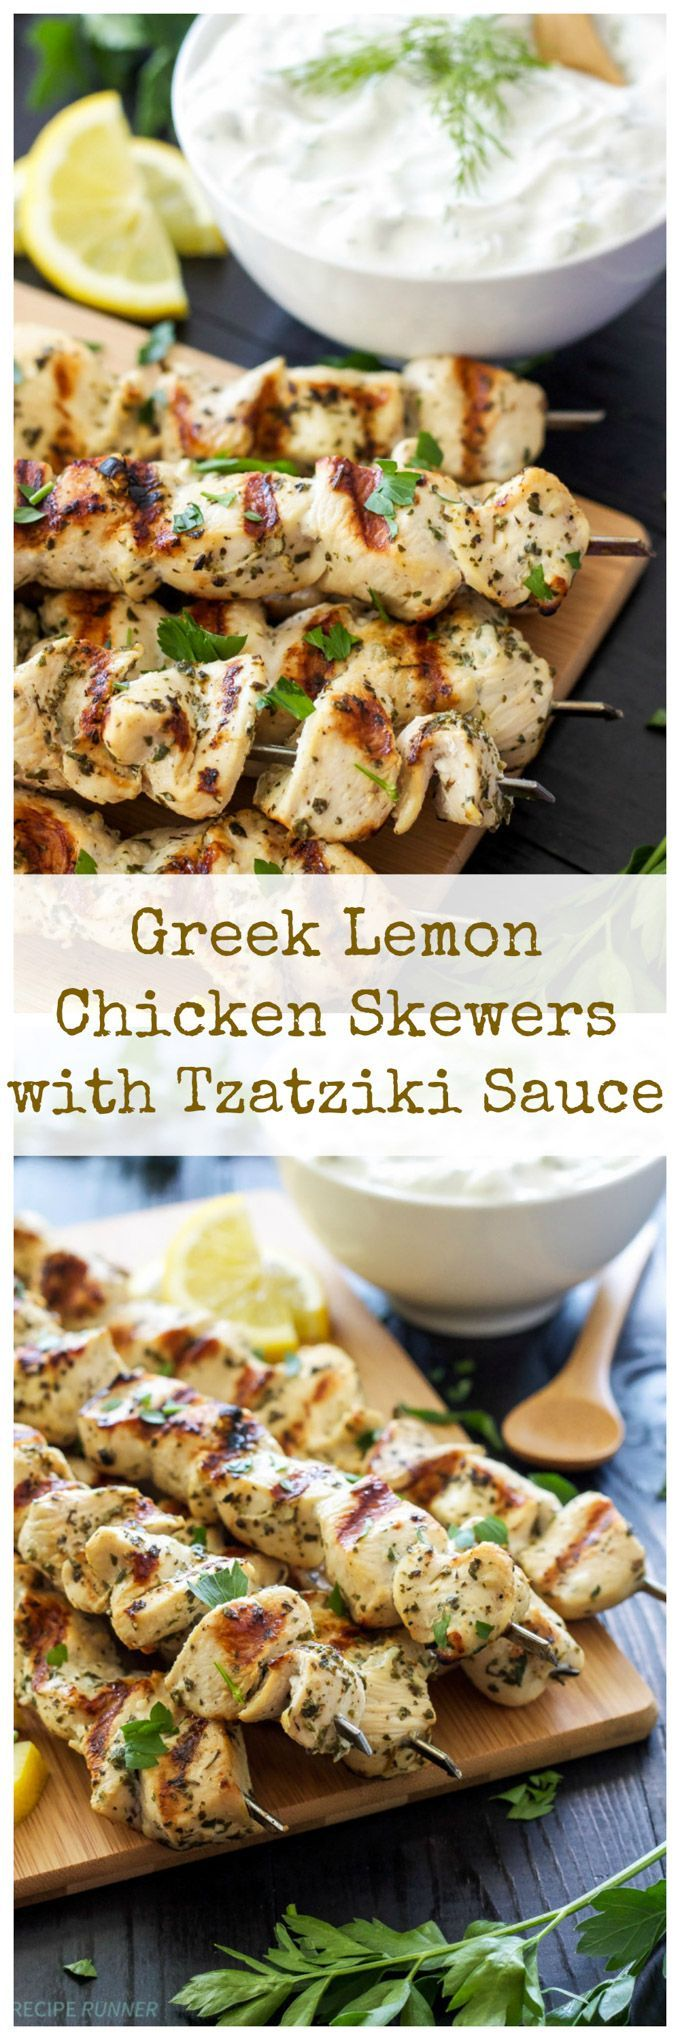 Greek Lemon Chicken Skewers with Tzatziki Sauce   Delicious and healthy Greek chicken skewers with a sauce youll want to slather